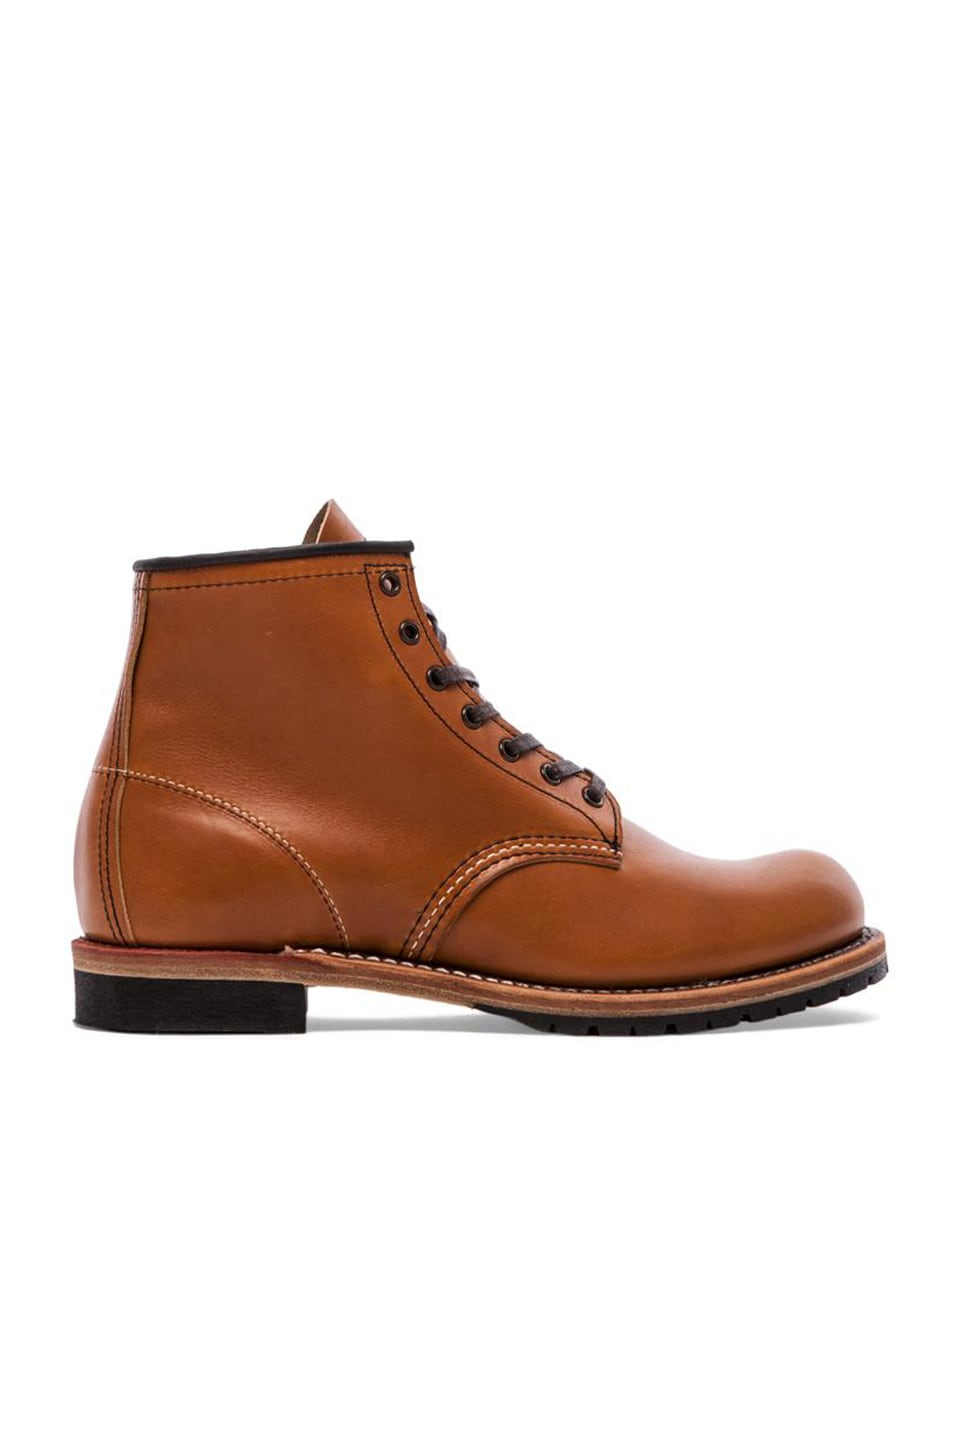 Red Wing Shoes Beckman Round Toe in Chestnut